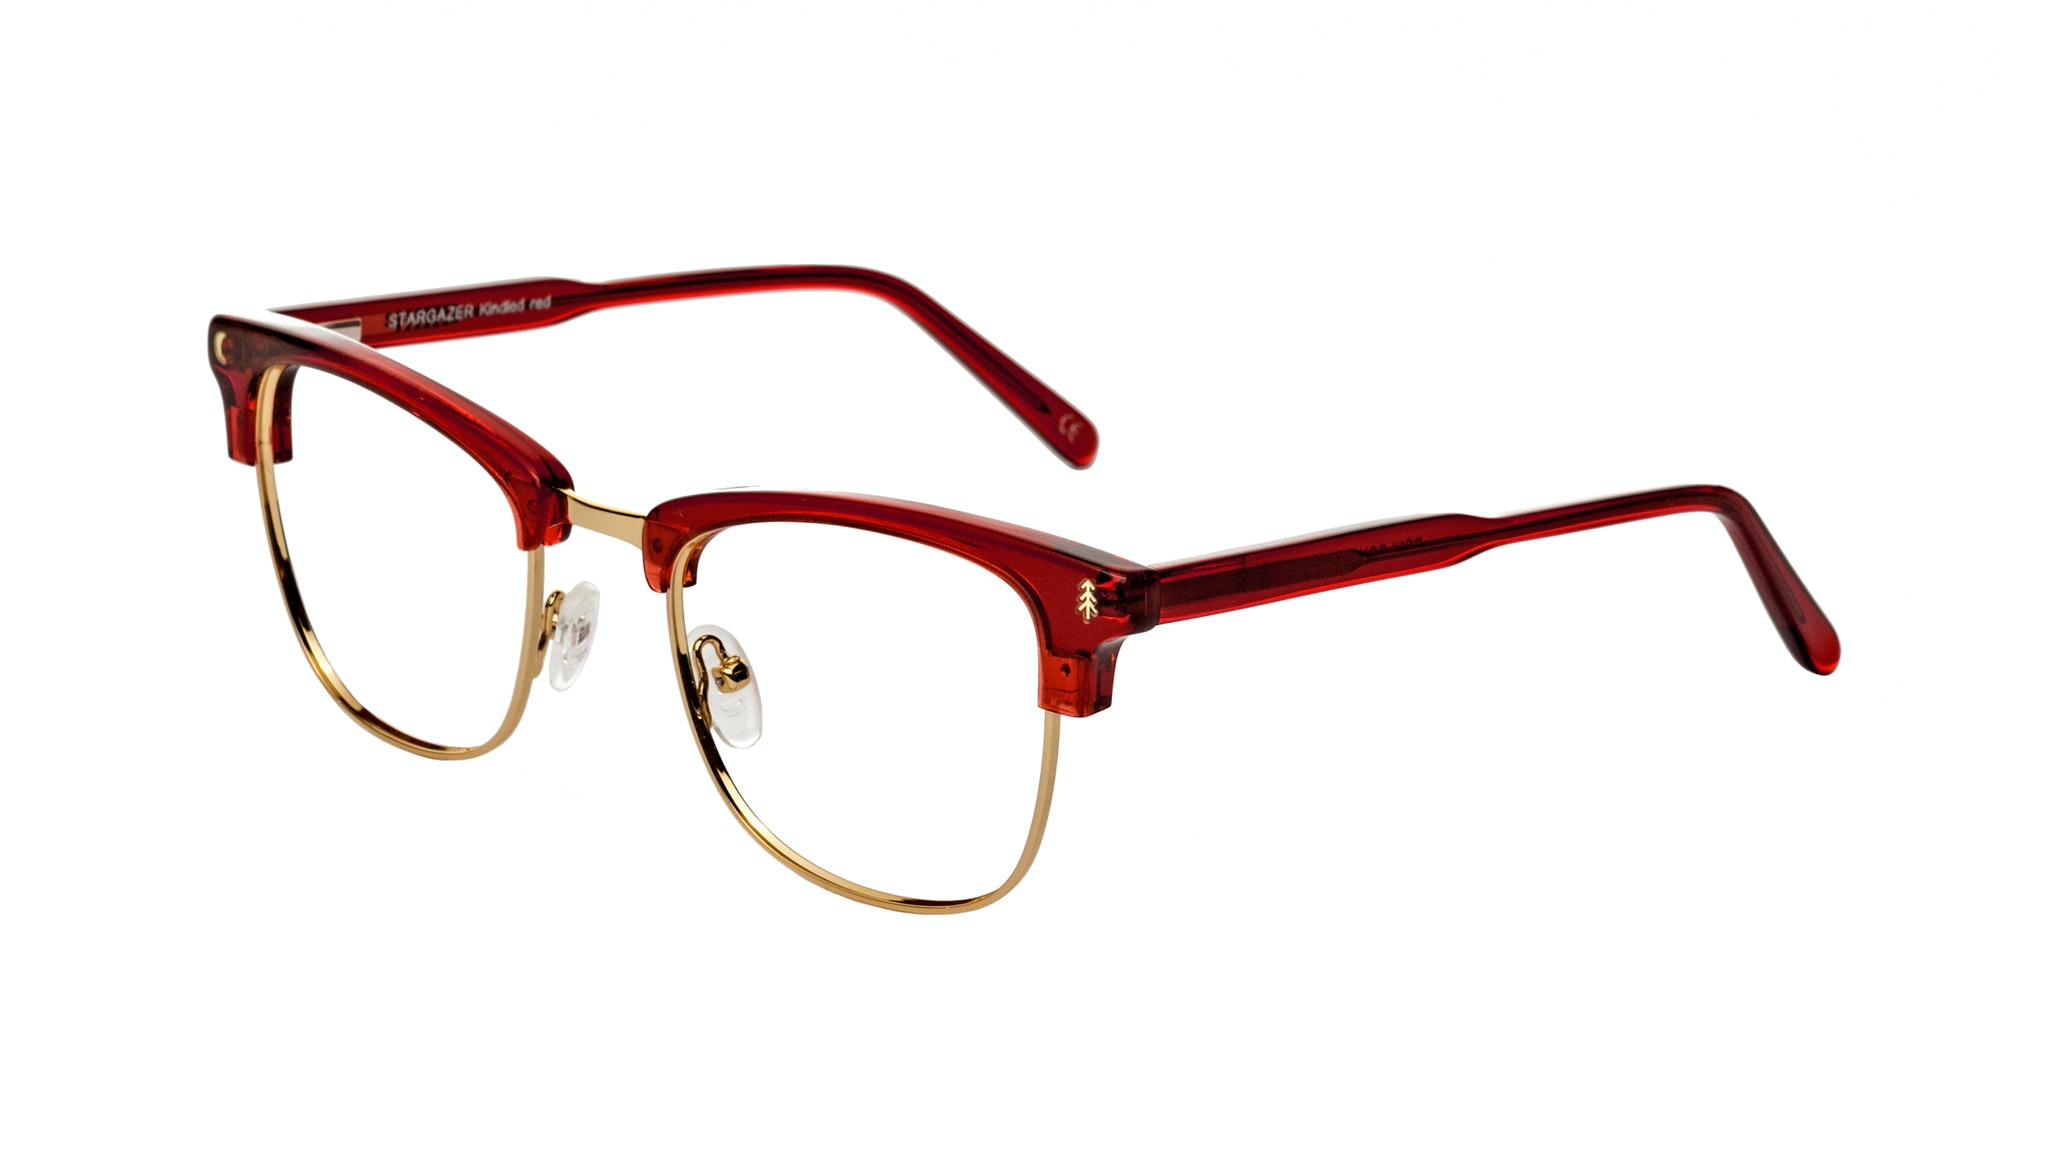 Affordable Fashion Glasses Rectangle Eyeglasses Women Stargazer Kindled Red Tilt